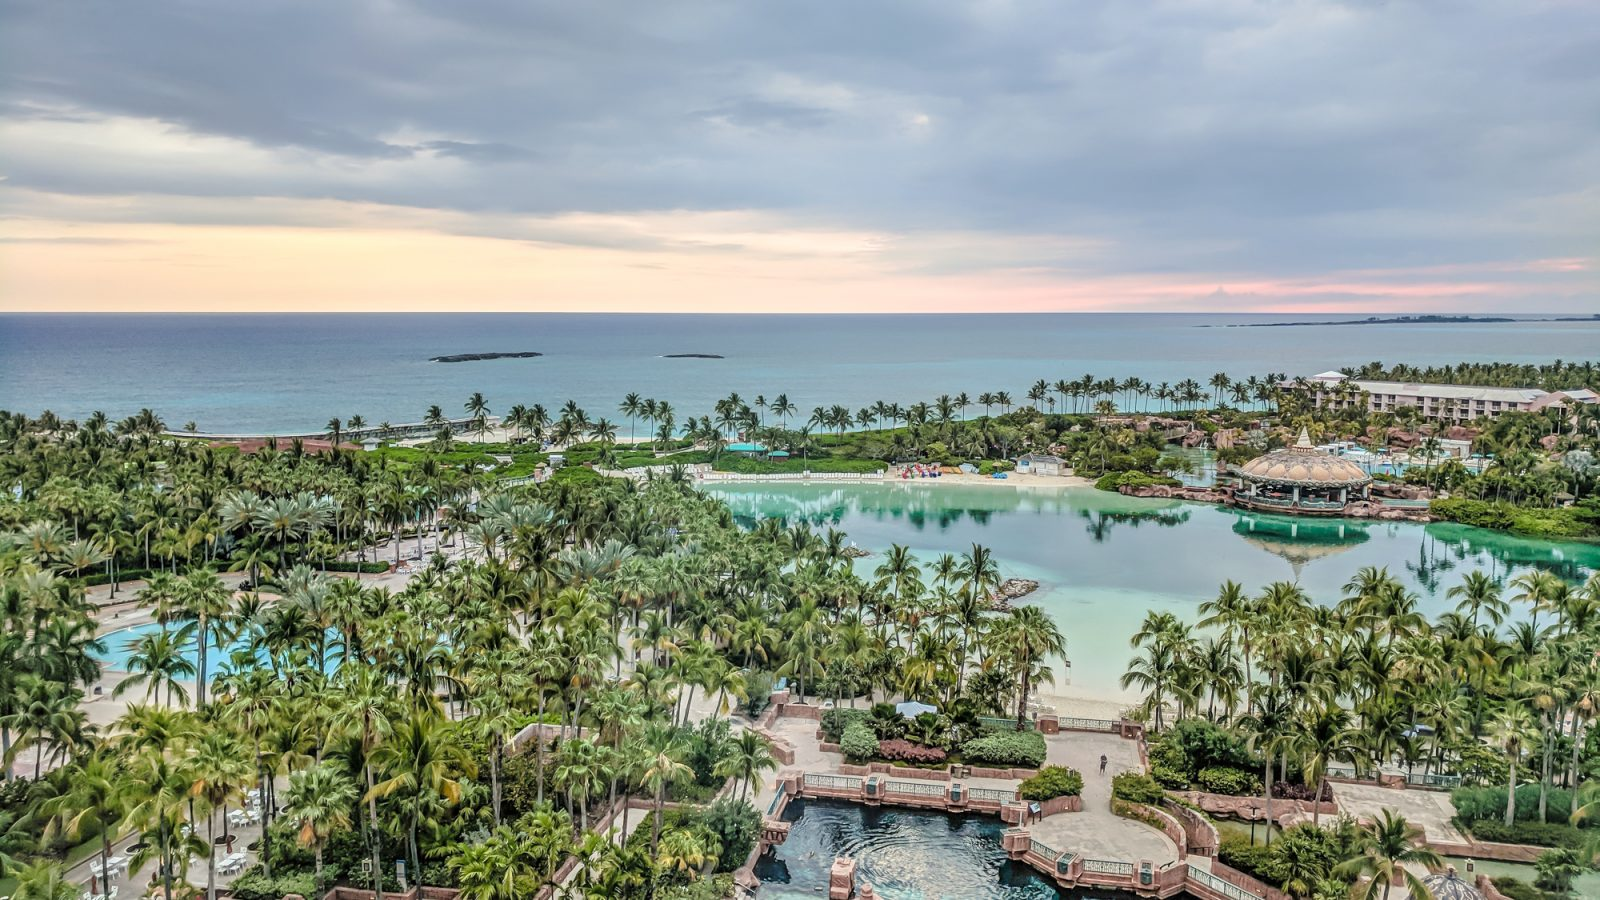 Get to know The Bahamas | Nassau | Where to stay in The Bahamas, what to pack for The Bahamas, and what you need to know about The Bahamas | #timebudgettravel #traveltips #thebahamas #bahamas #nassau #caribbean